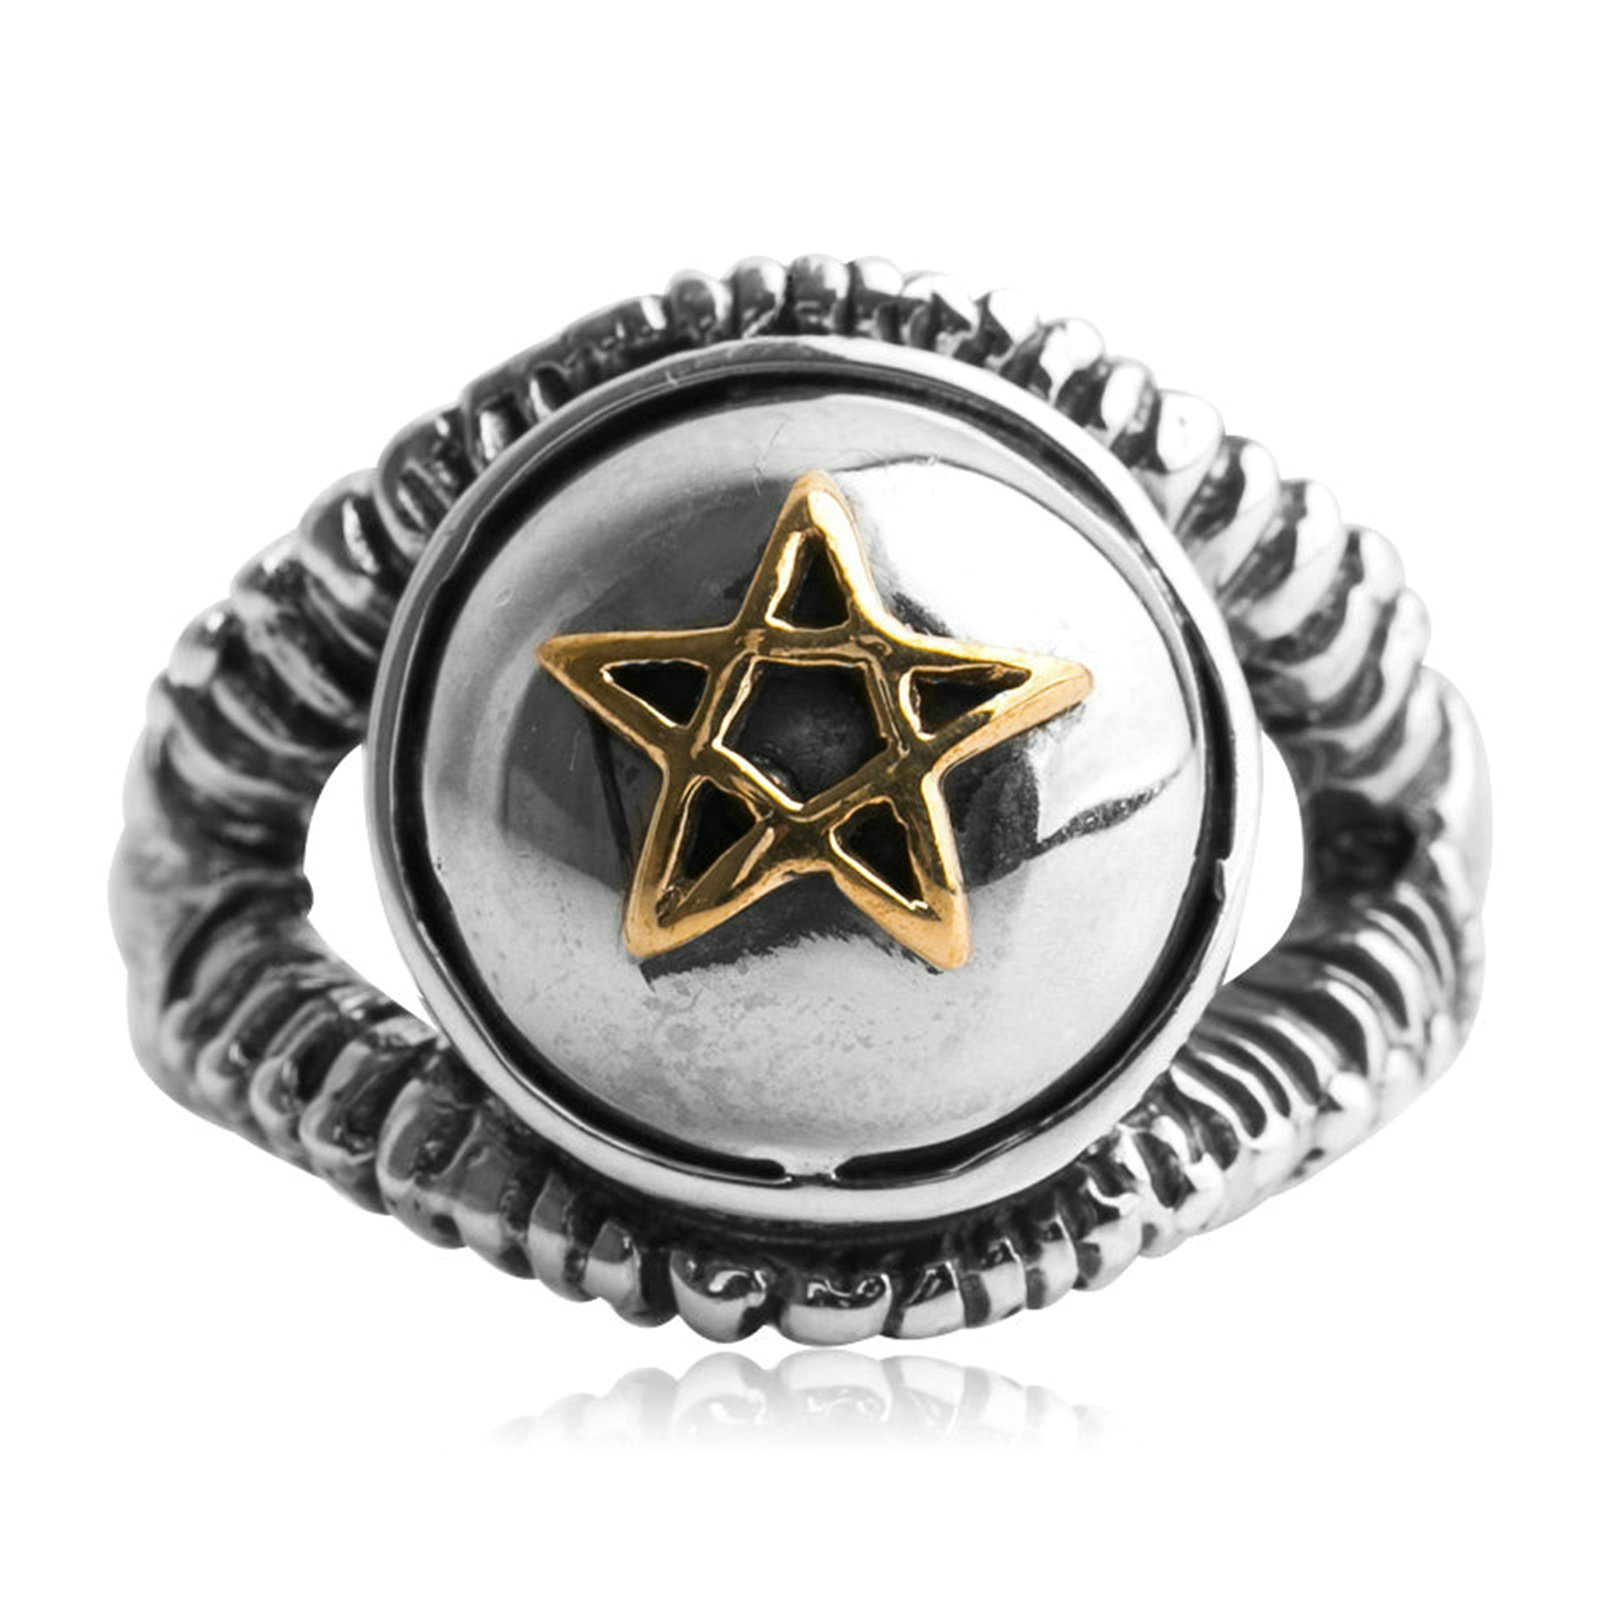 Adisaer Biker Rings Silver Ring for Men Gold Pentagram Star Ring Size 9.5 Vintage Punk Jewelry by Adisaer